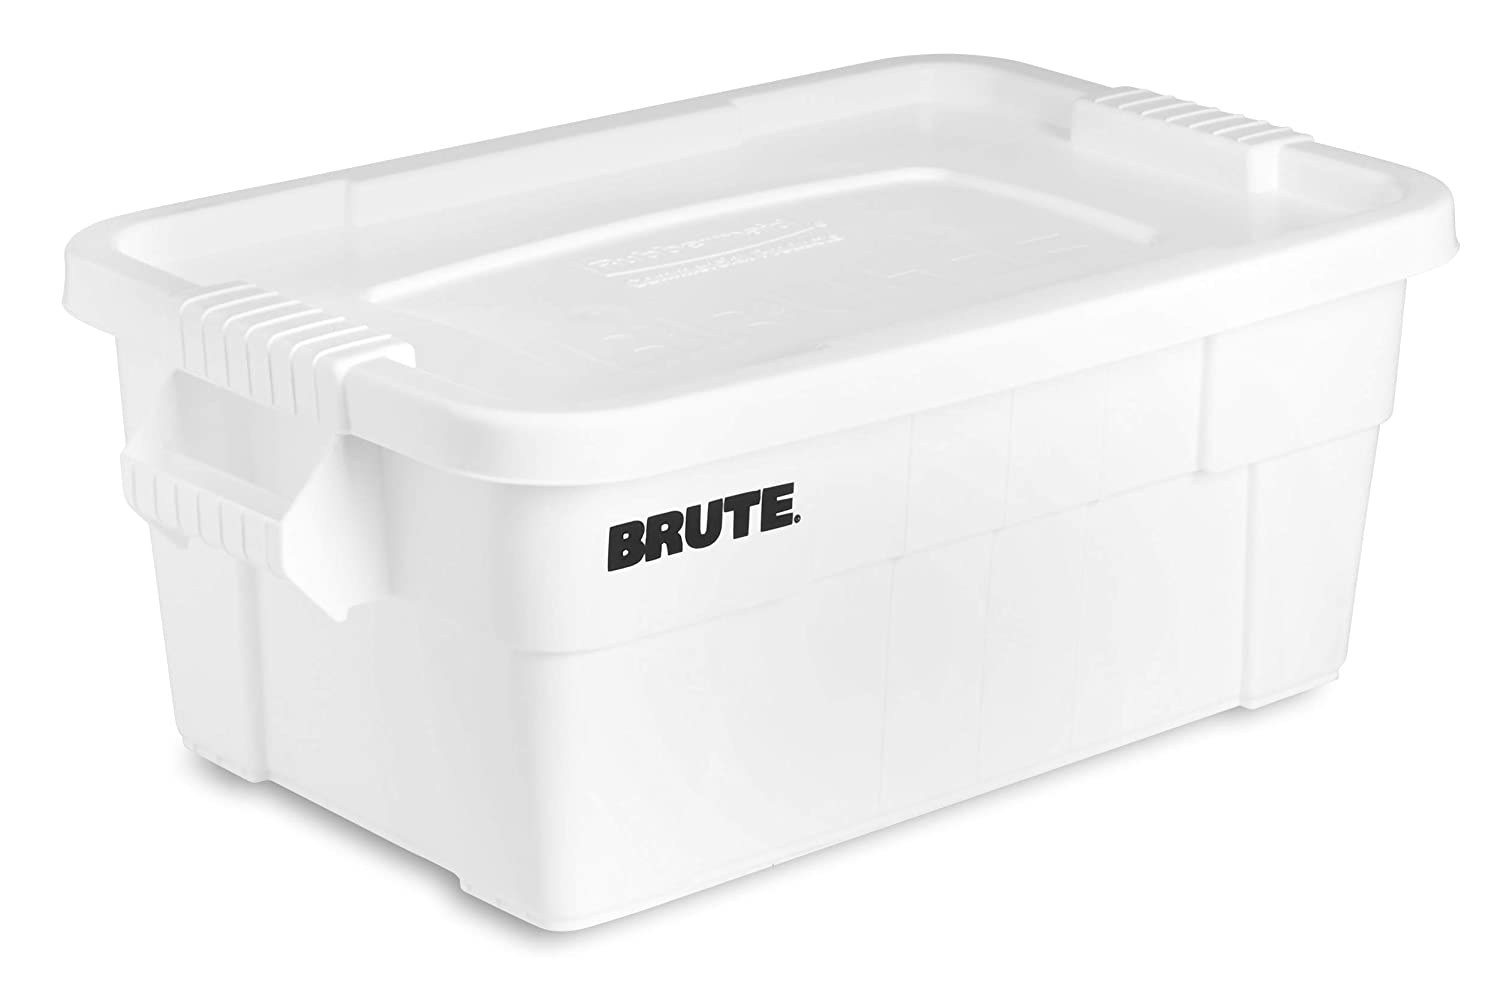 Rubbermaid Commercial Products BRUTE Tote Storage Container with Lid, 14-Gallon, White (FG9S3000WHT)